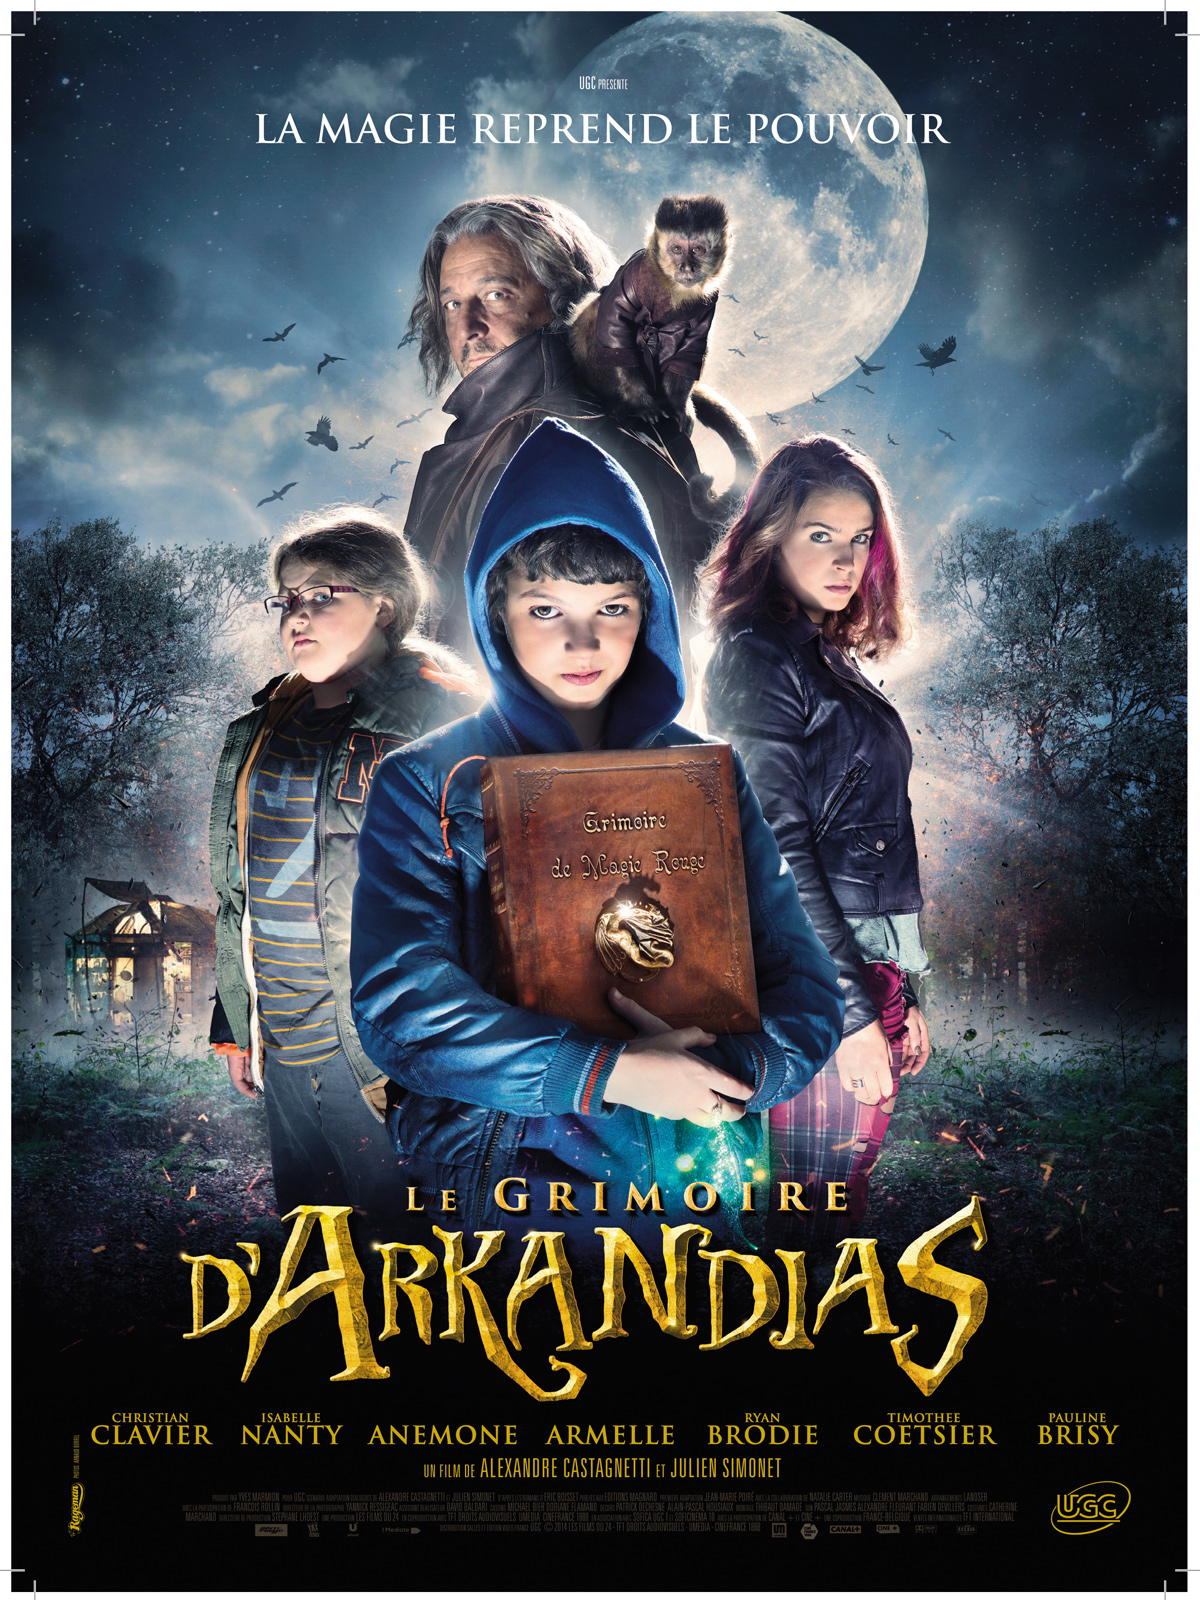 Le Grimoire d'Arkandias - film 2013 - AlloCiné